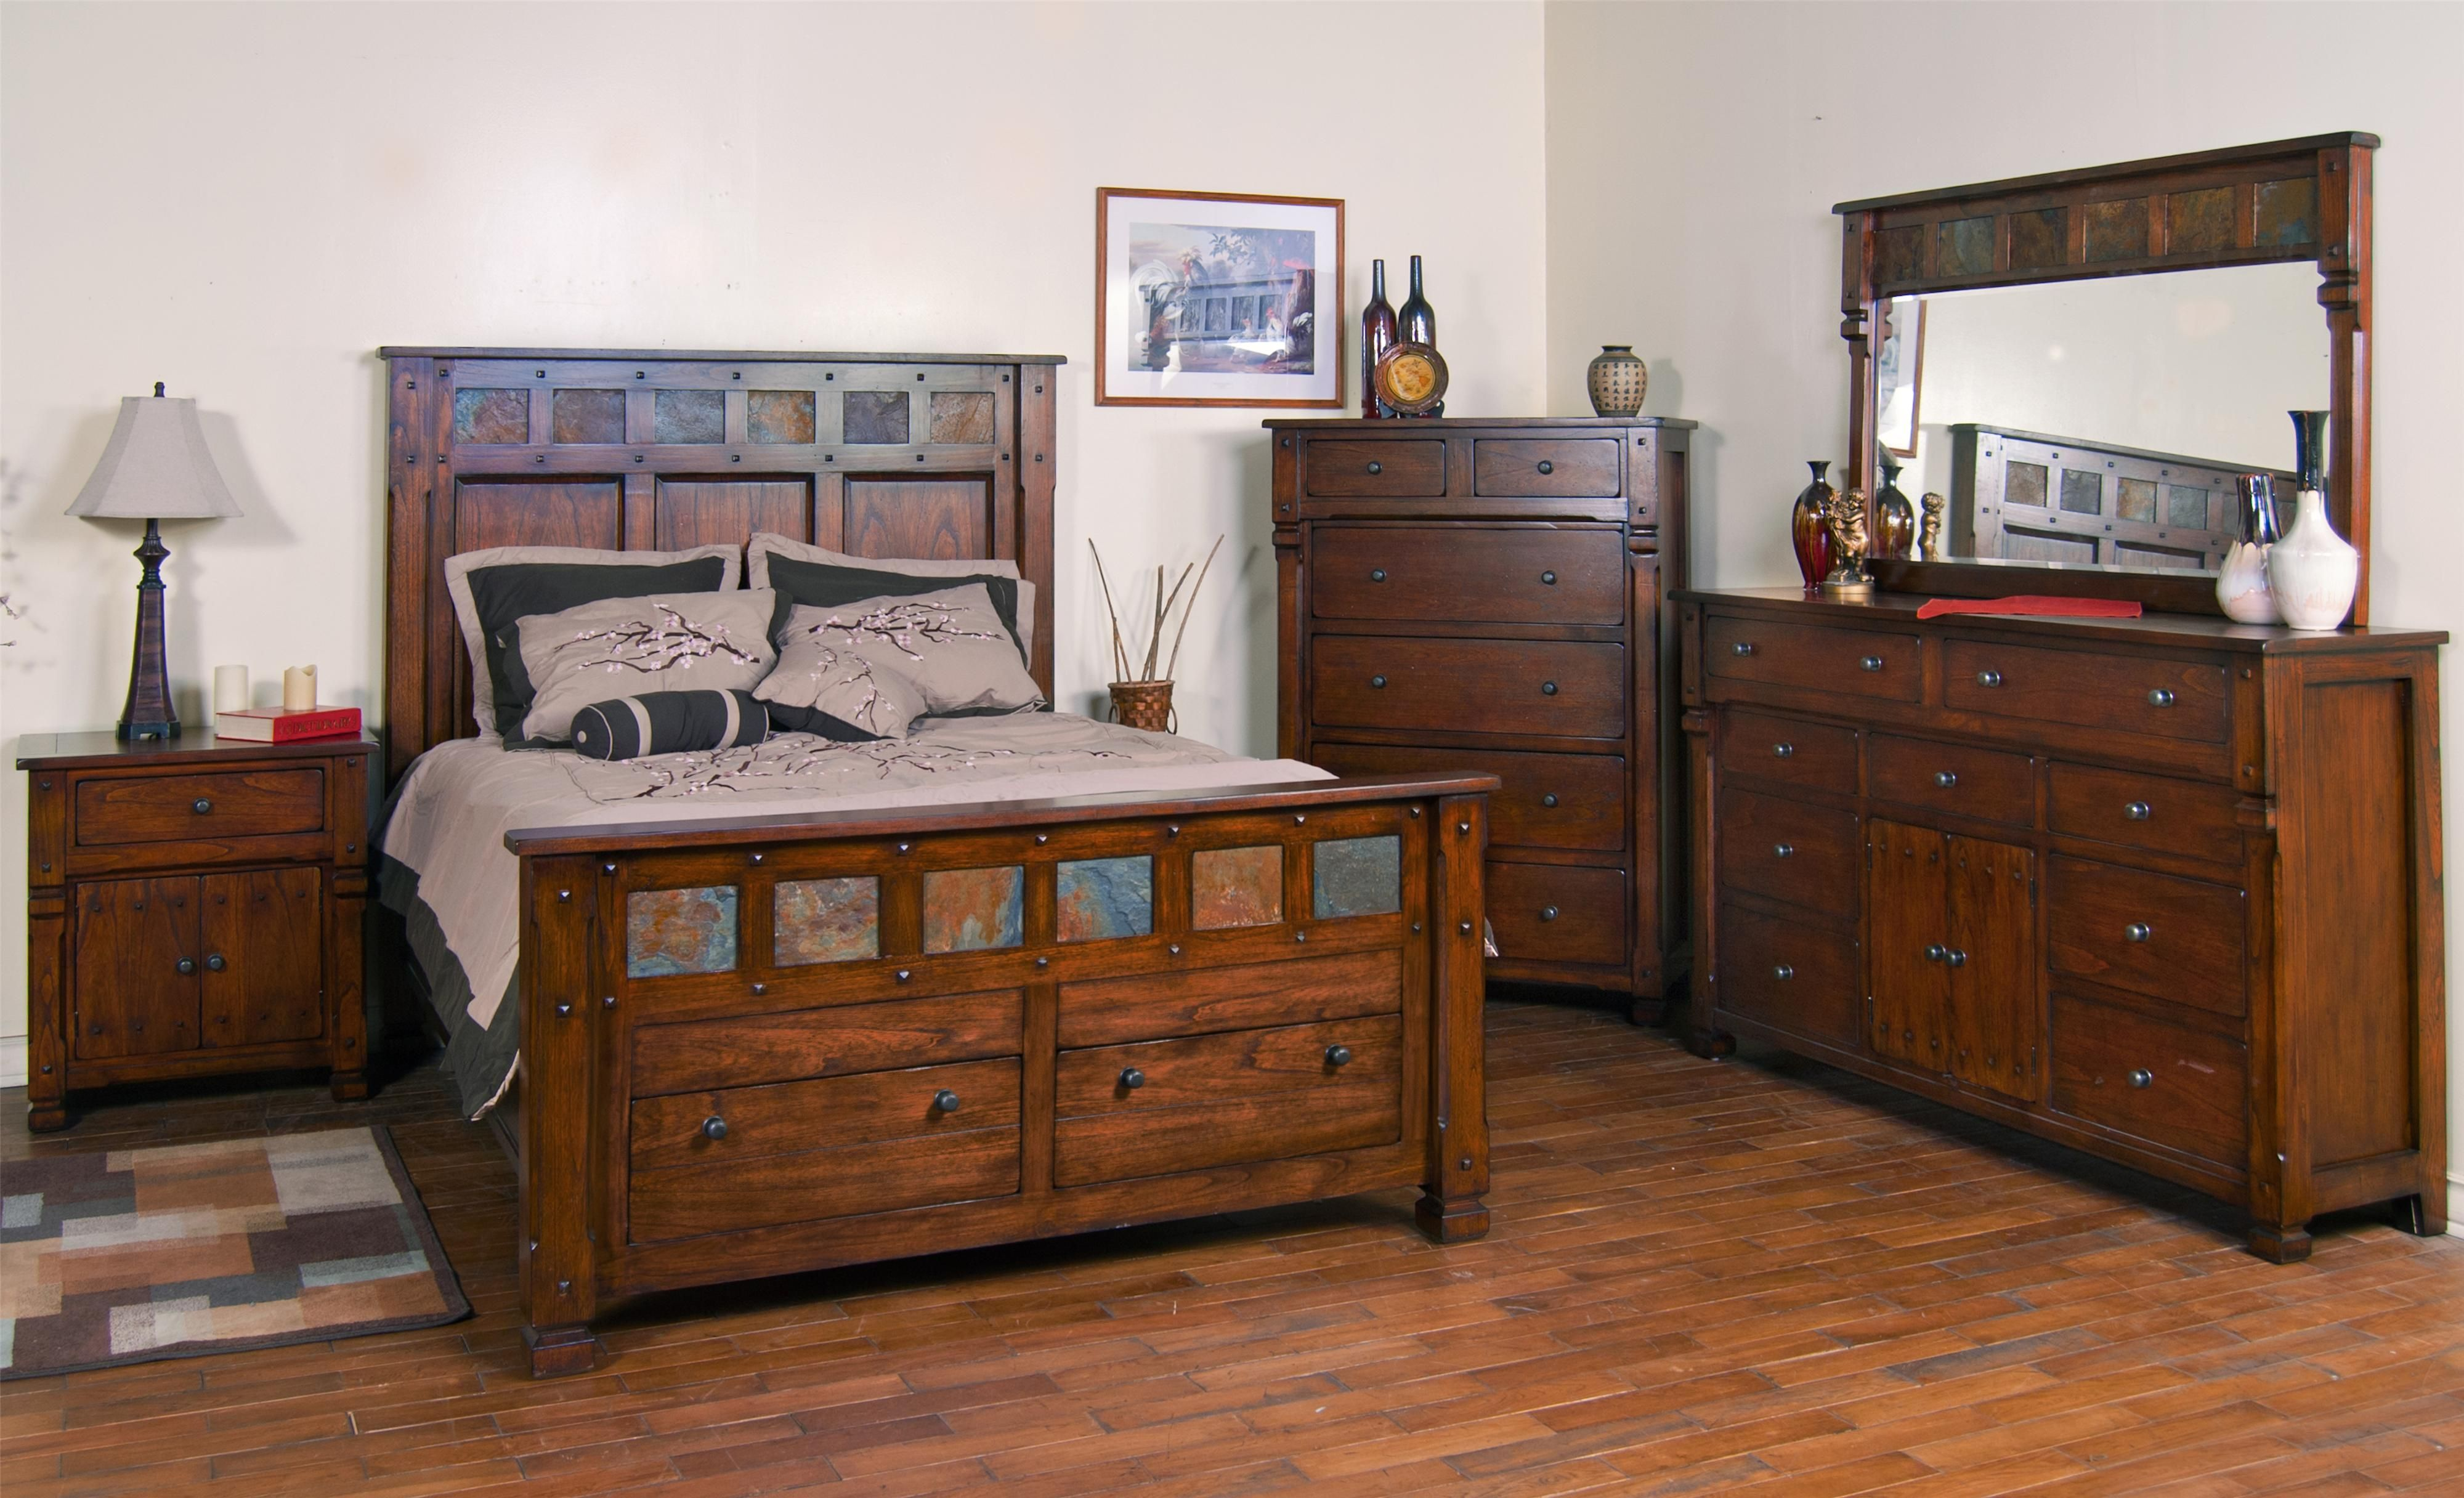 Sunny Designs Furniture Santa Fe Bedroom Collection Featuring Storage Bed With Slate Dresser And